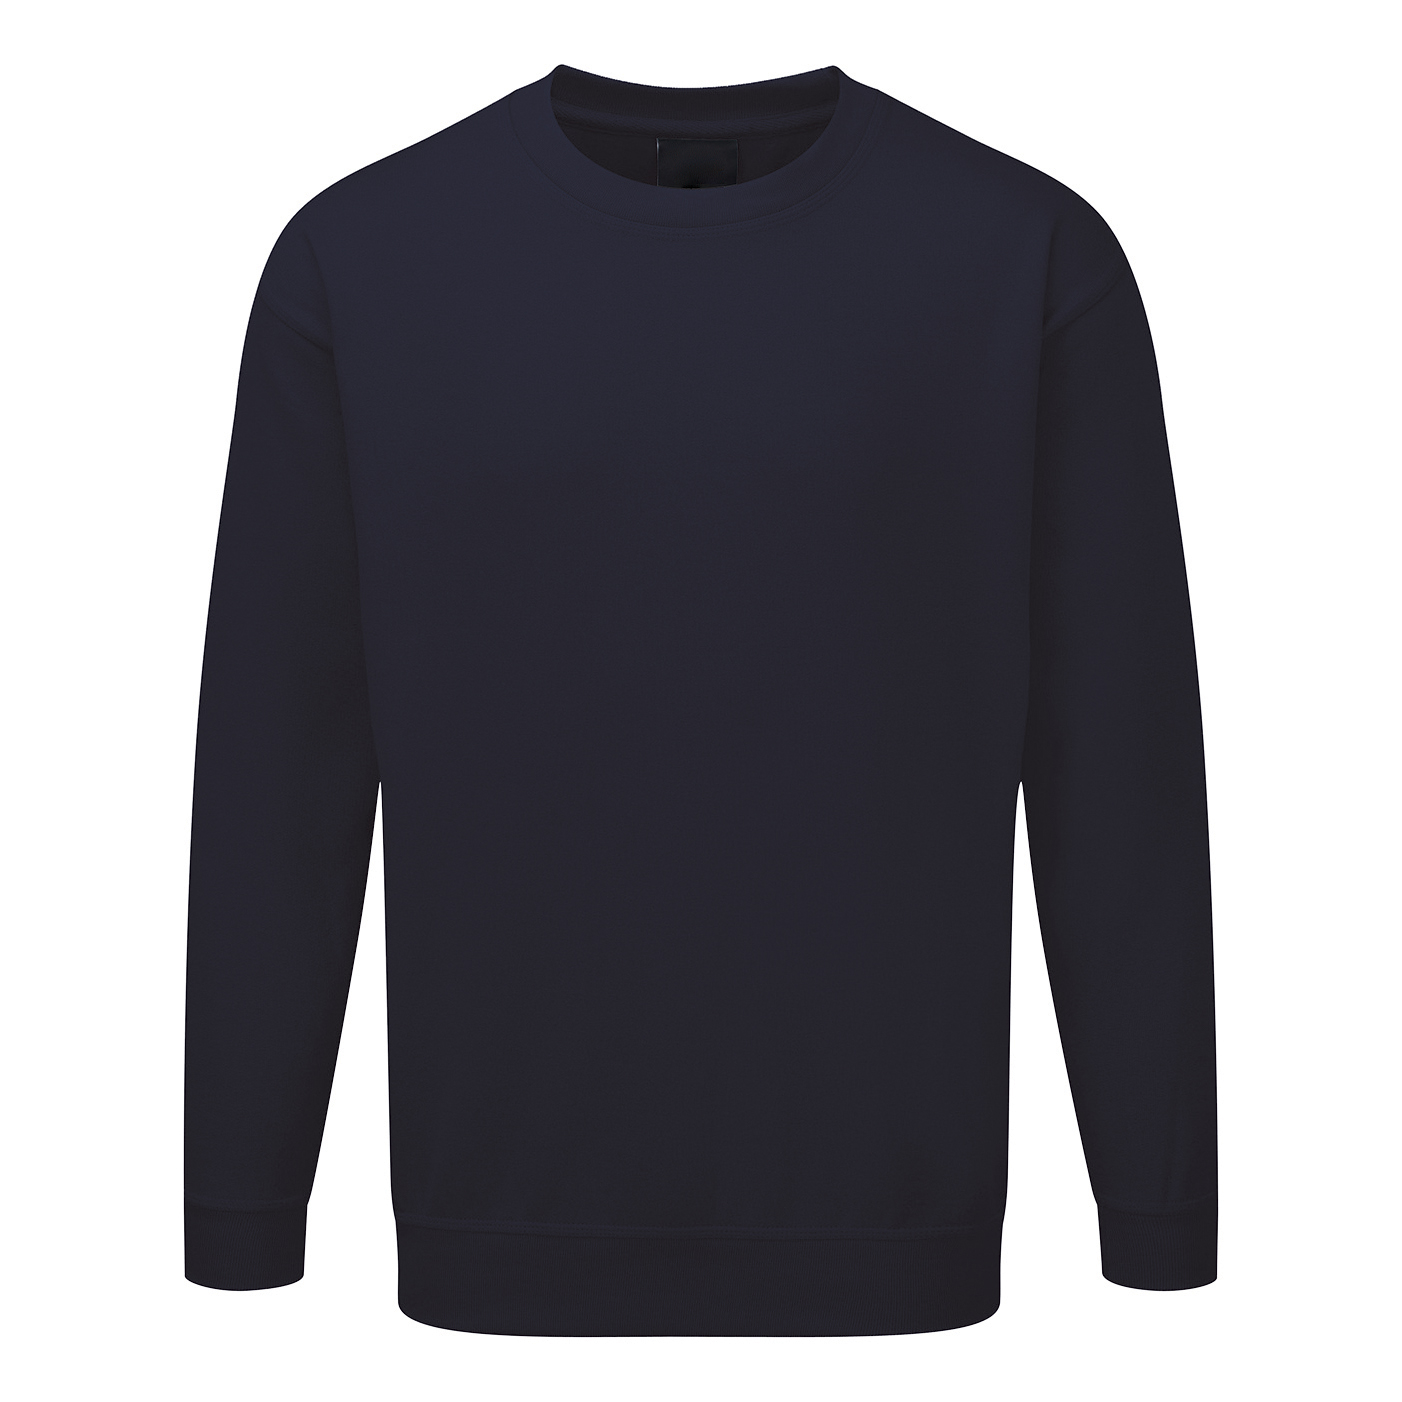 Click Workwear Sweatshirt Polycotton 300gsm 3XL Navy Blue Ref CLPCSNXXXL *1-3 Days Lead Time*